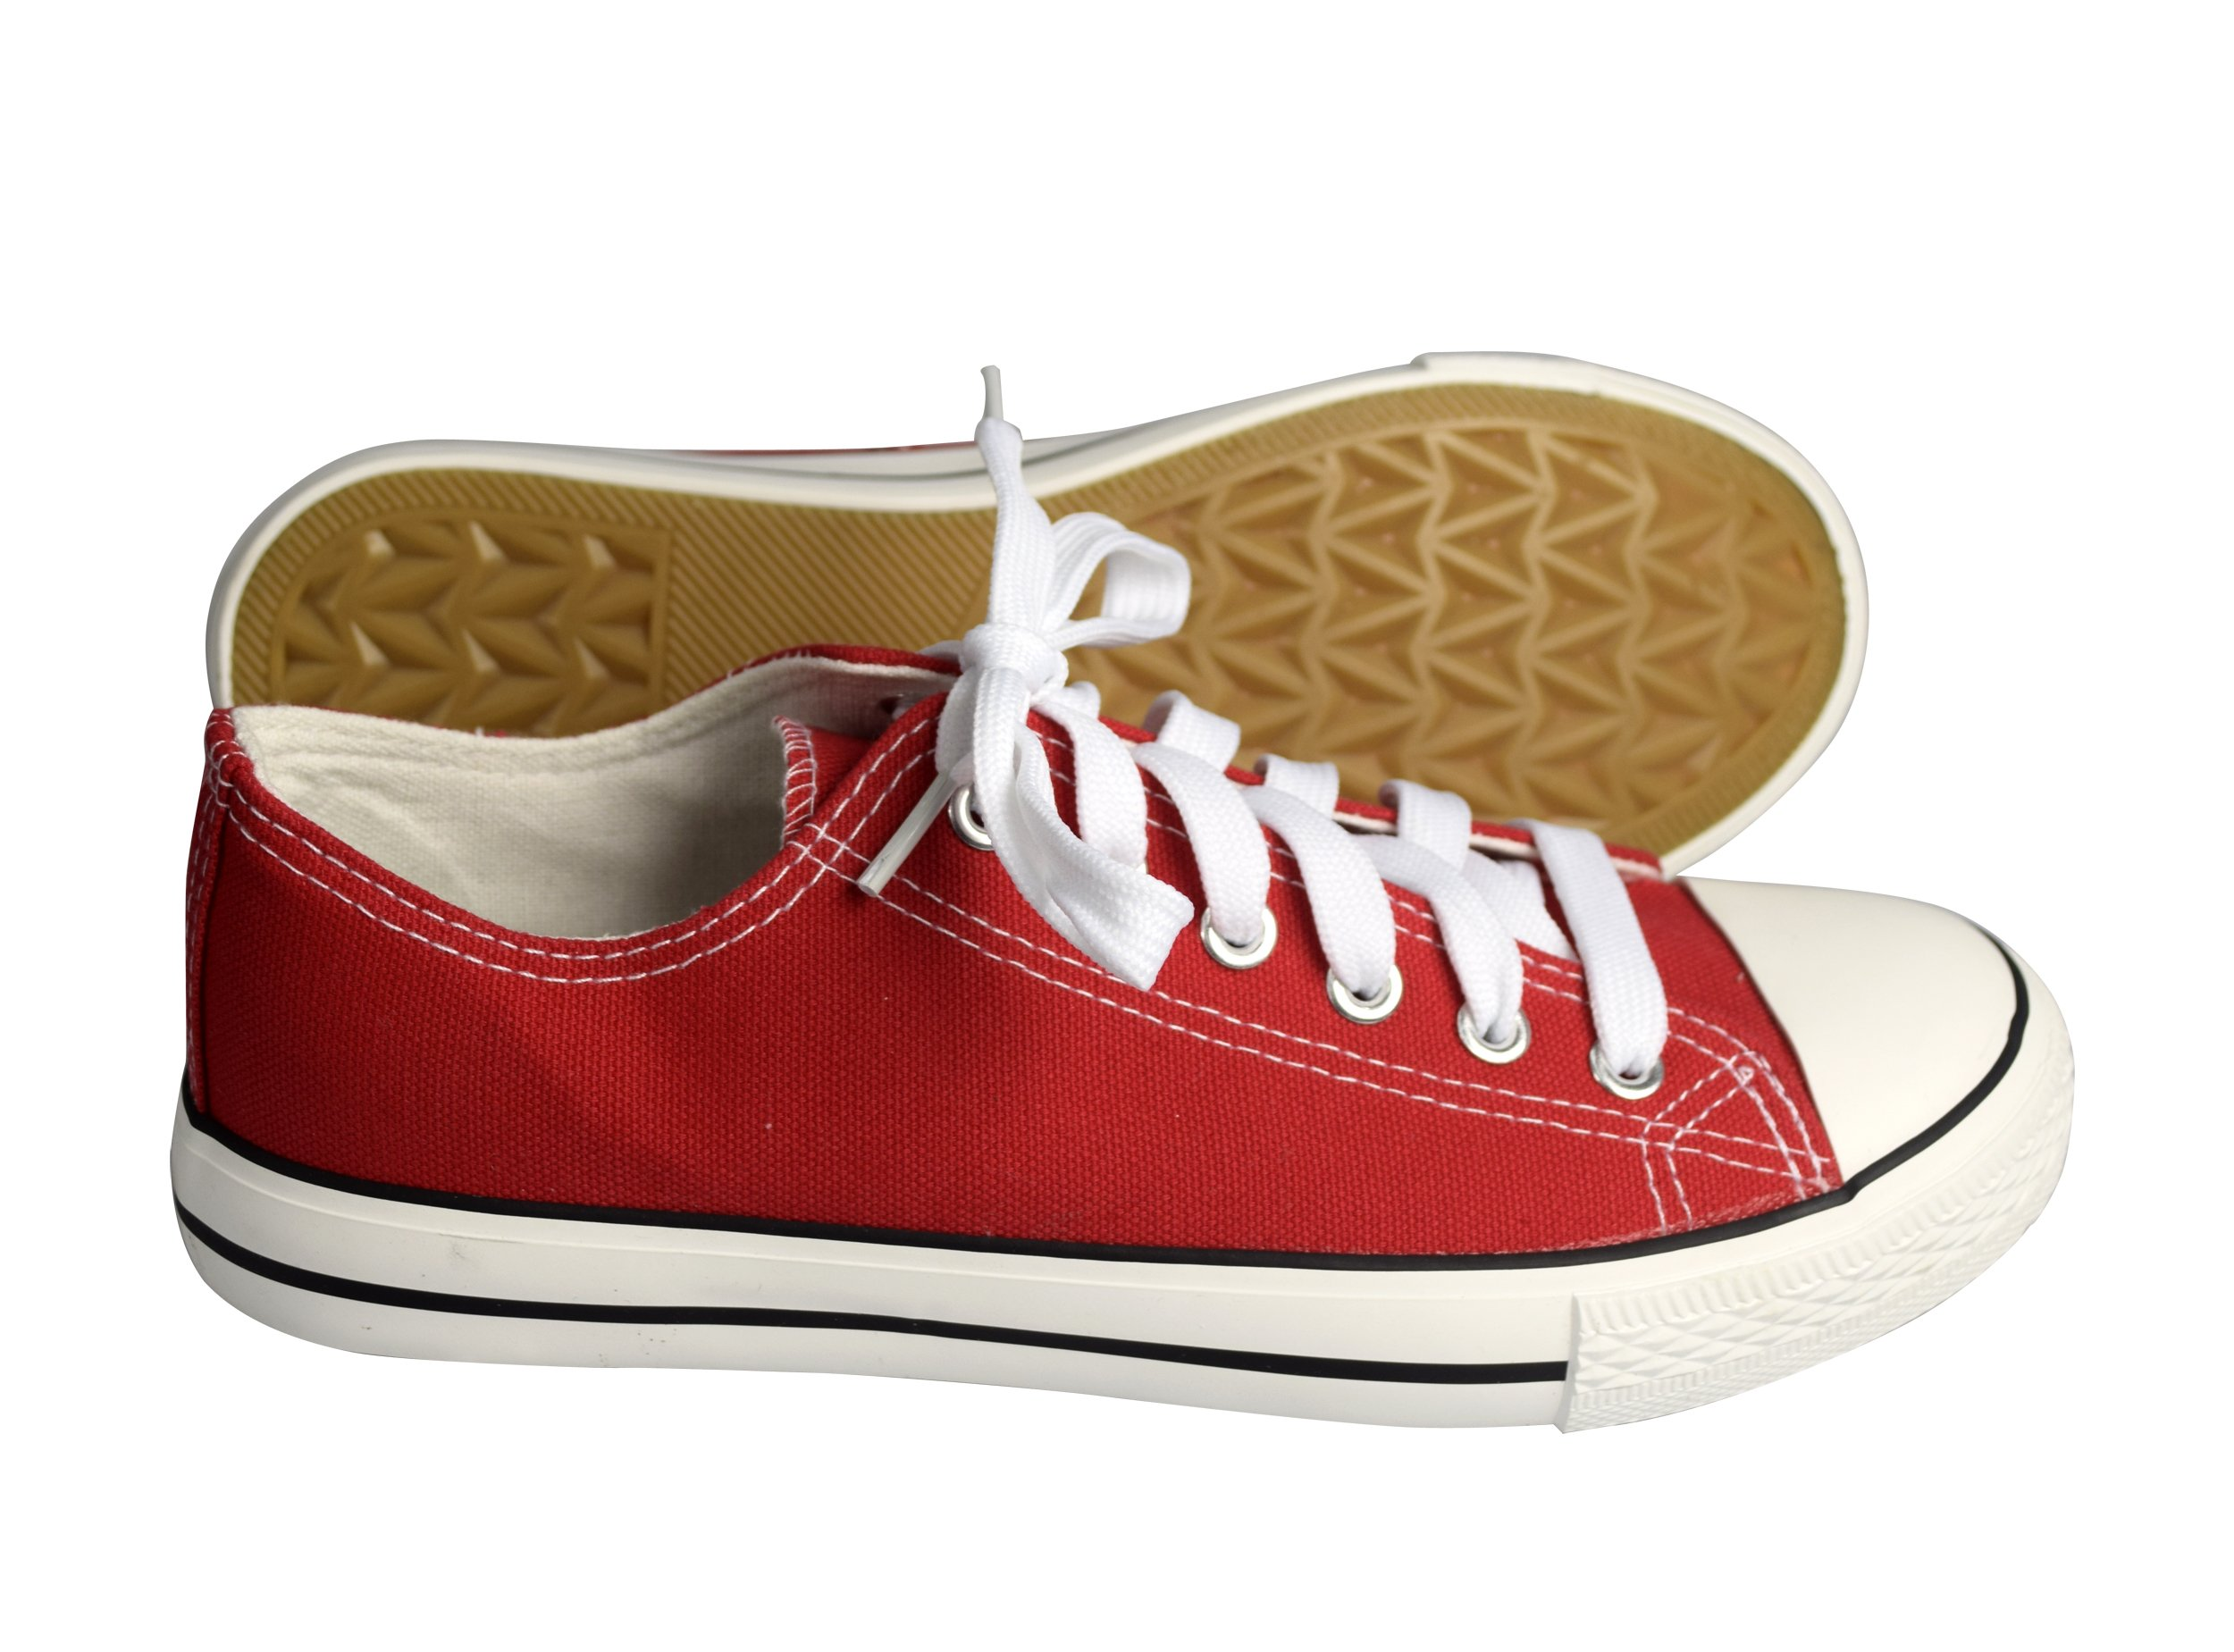 Peach Couture Casual Sneakers Low Top Tennis Shoes (Red 9)